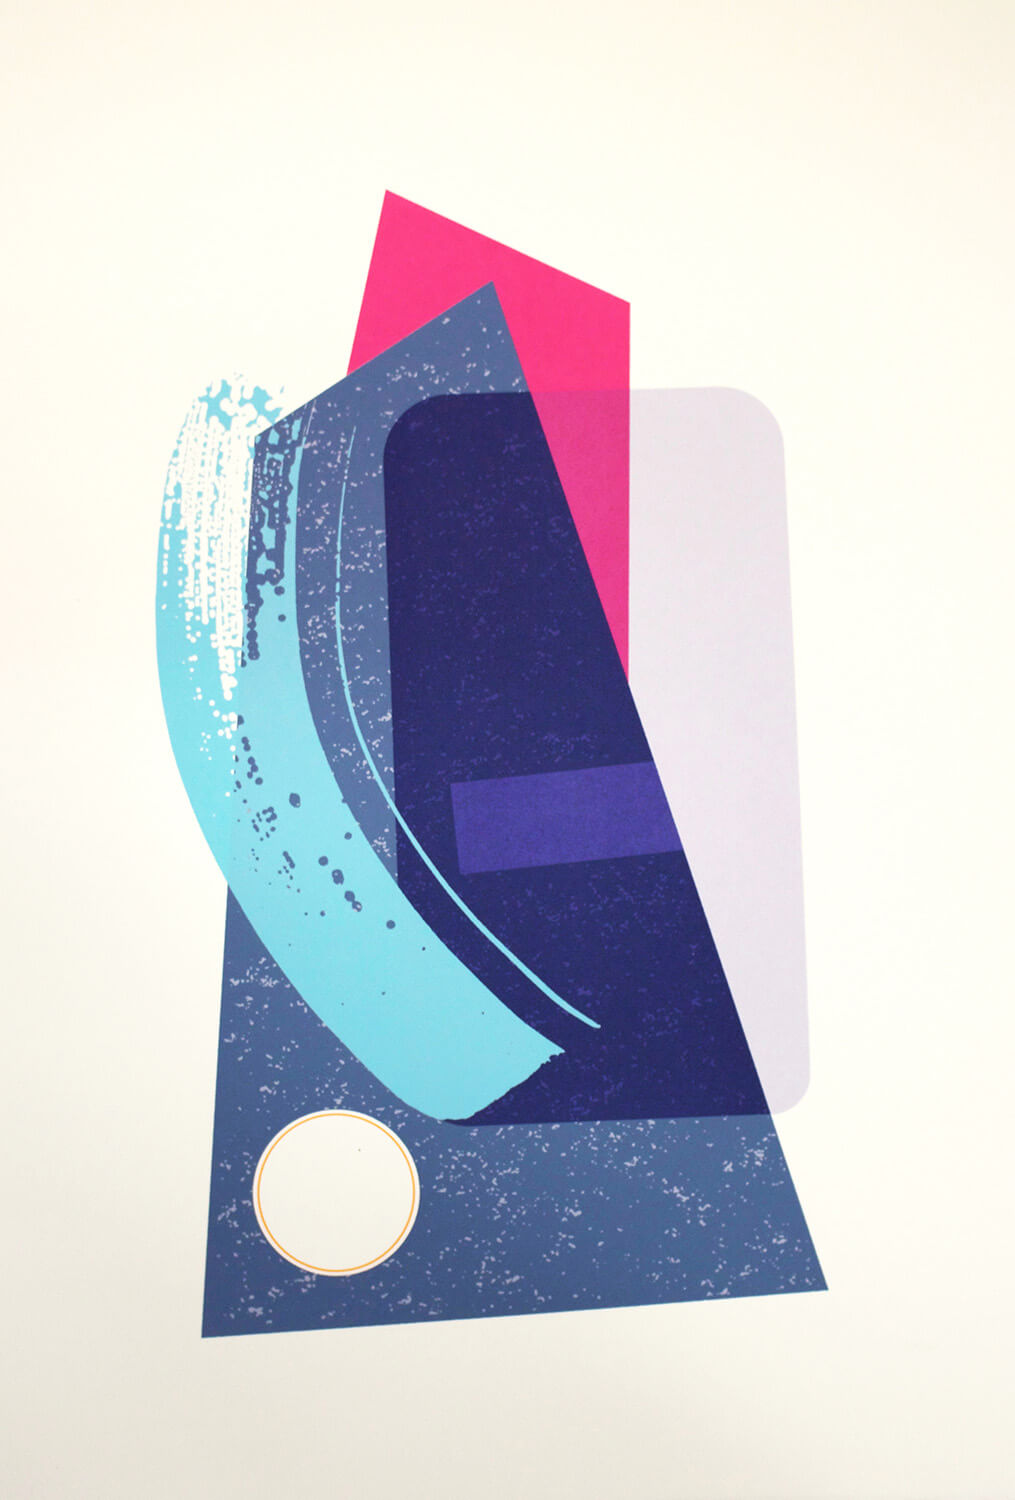 Abstract pop art screenprint in blue & pink, with blue brushstroke effect, in a limited edition by Josie Blue Molloy